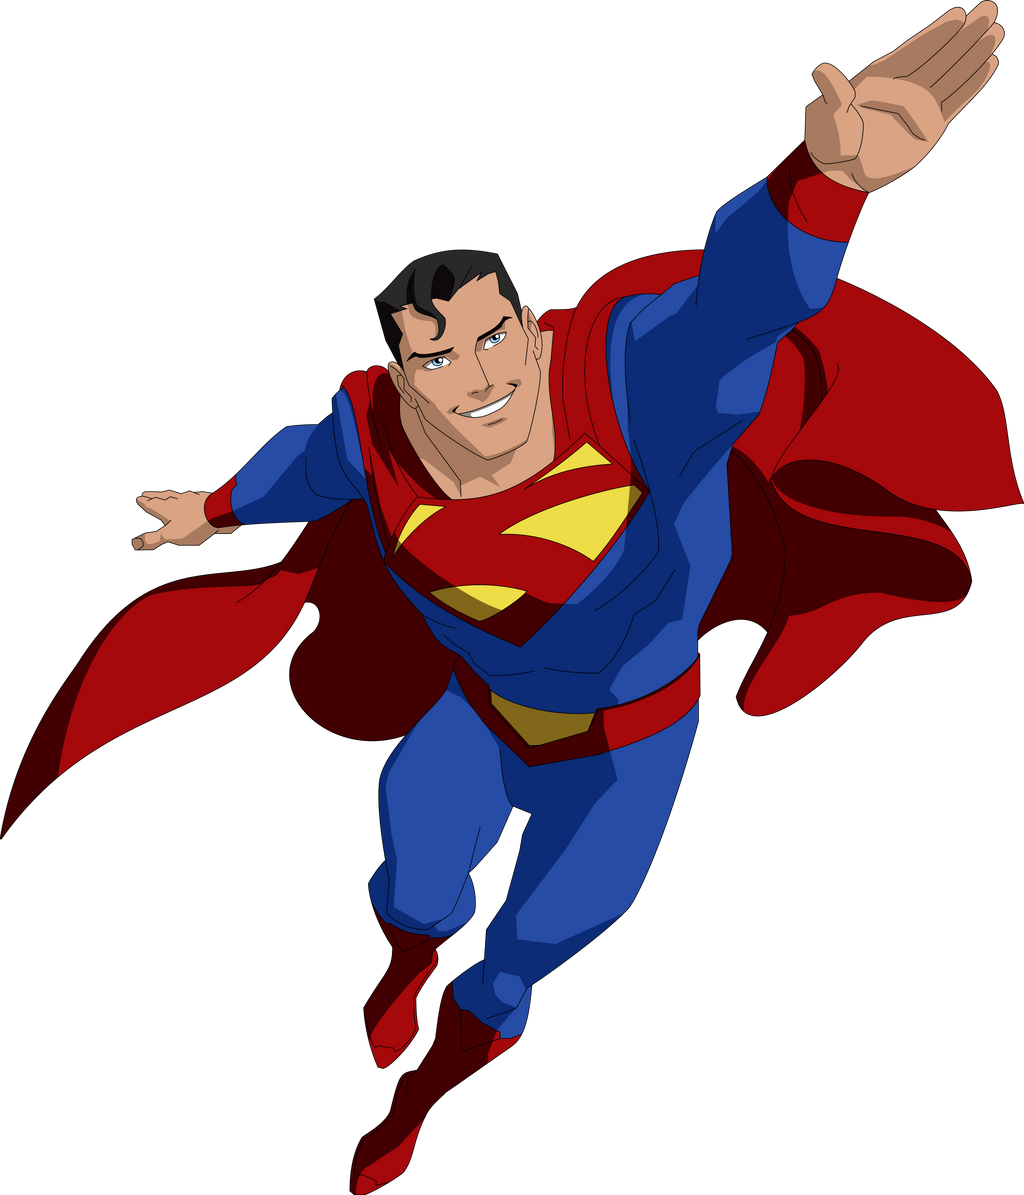 [Jeu] Association d'images - Page 39 Earth_2_superman__bourassa_style__by_owc478-d74ivzp